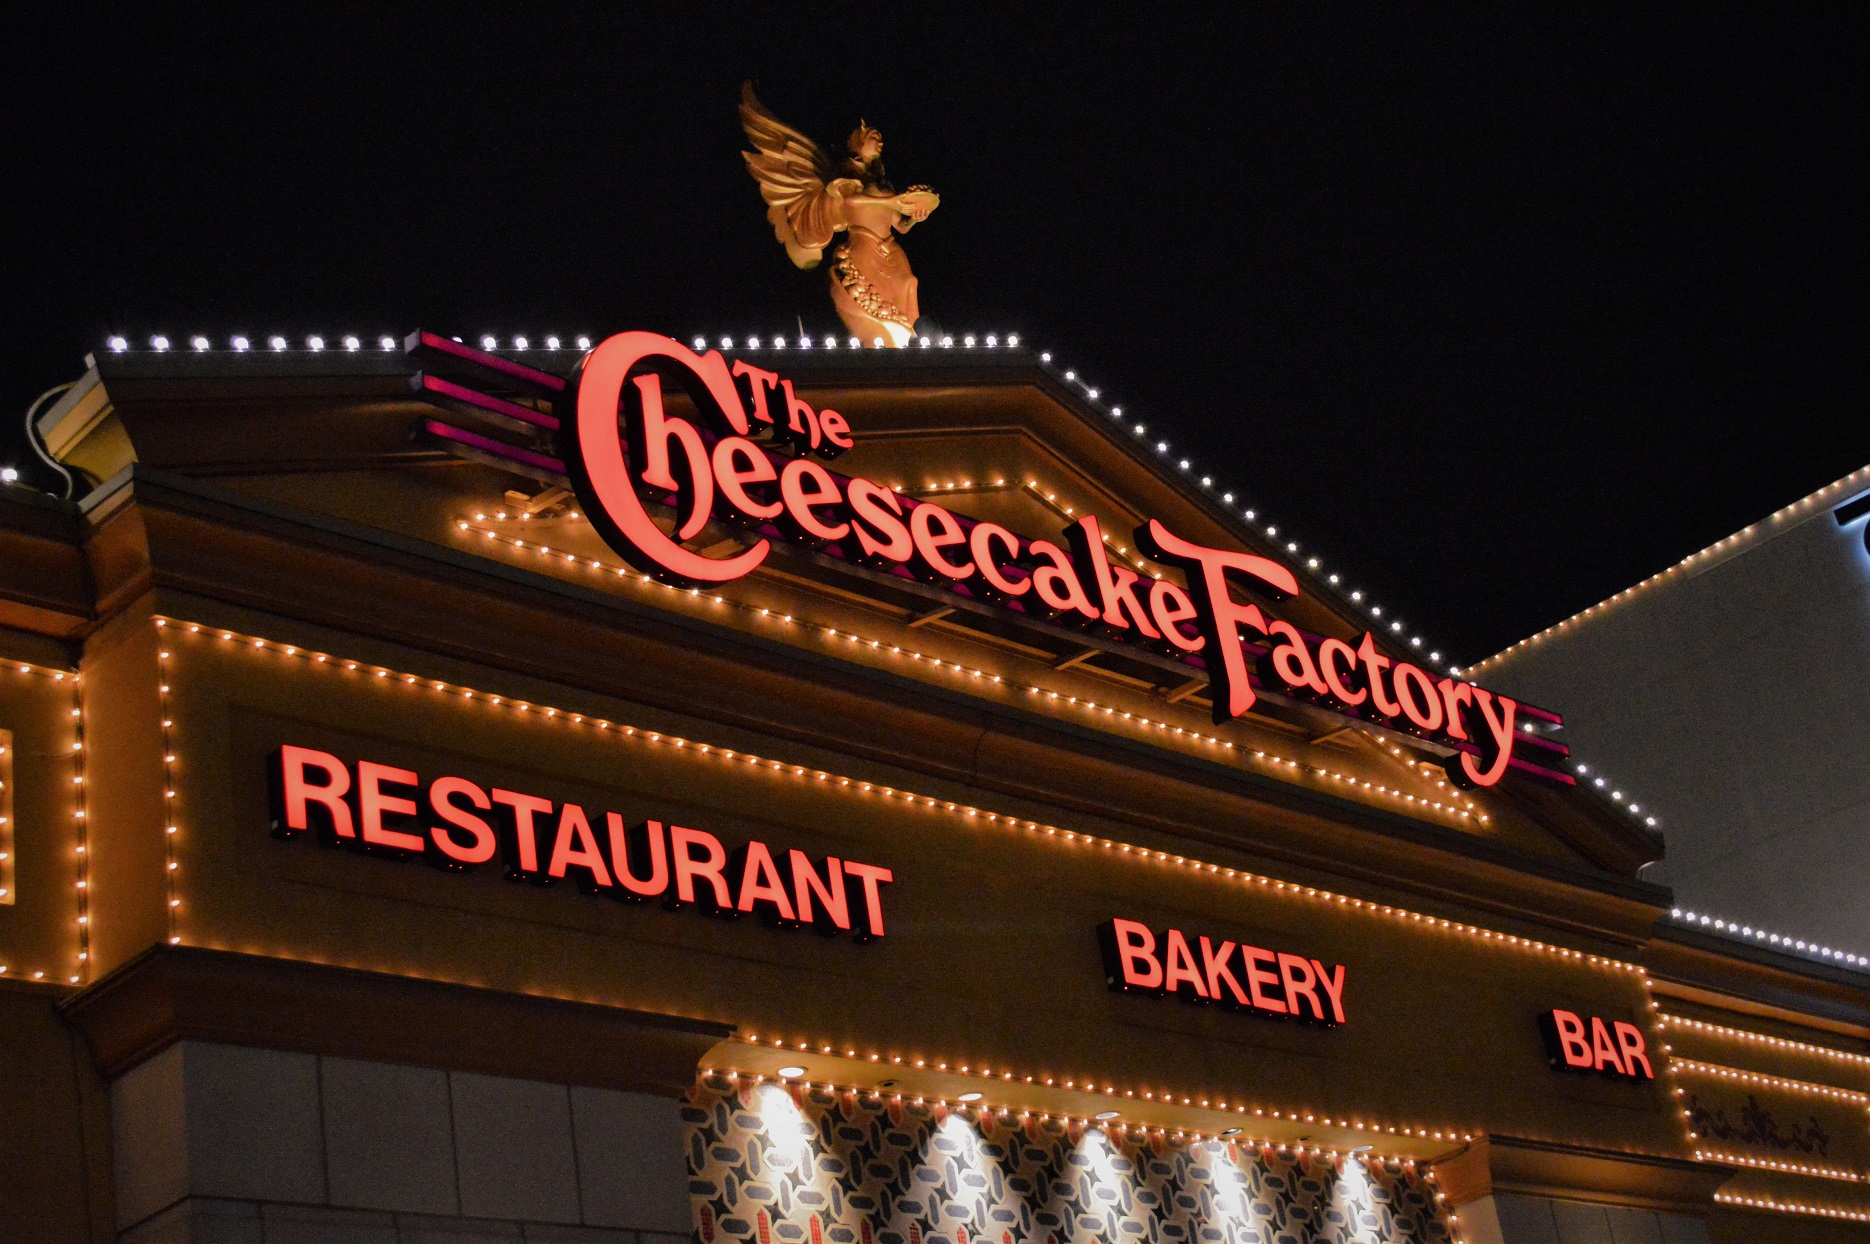 The Cheesecake Factory Restaurant Front Lights